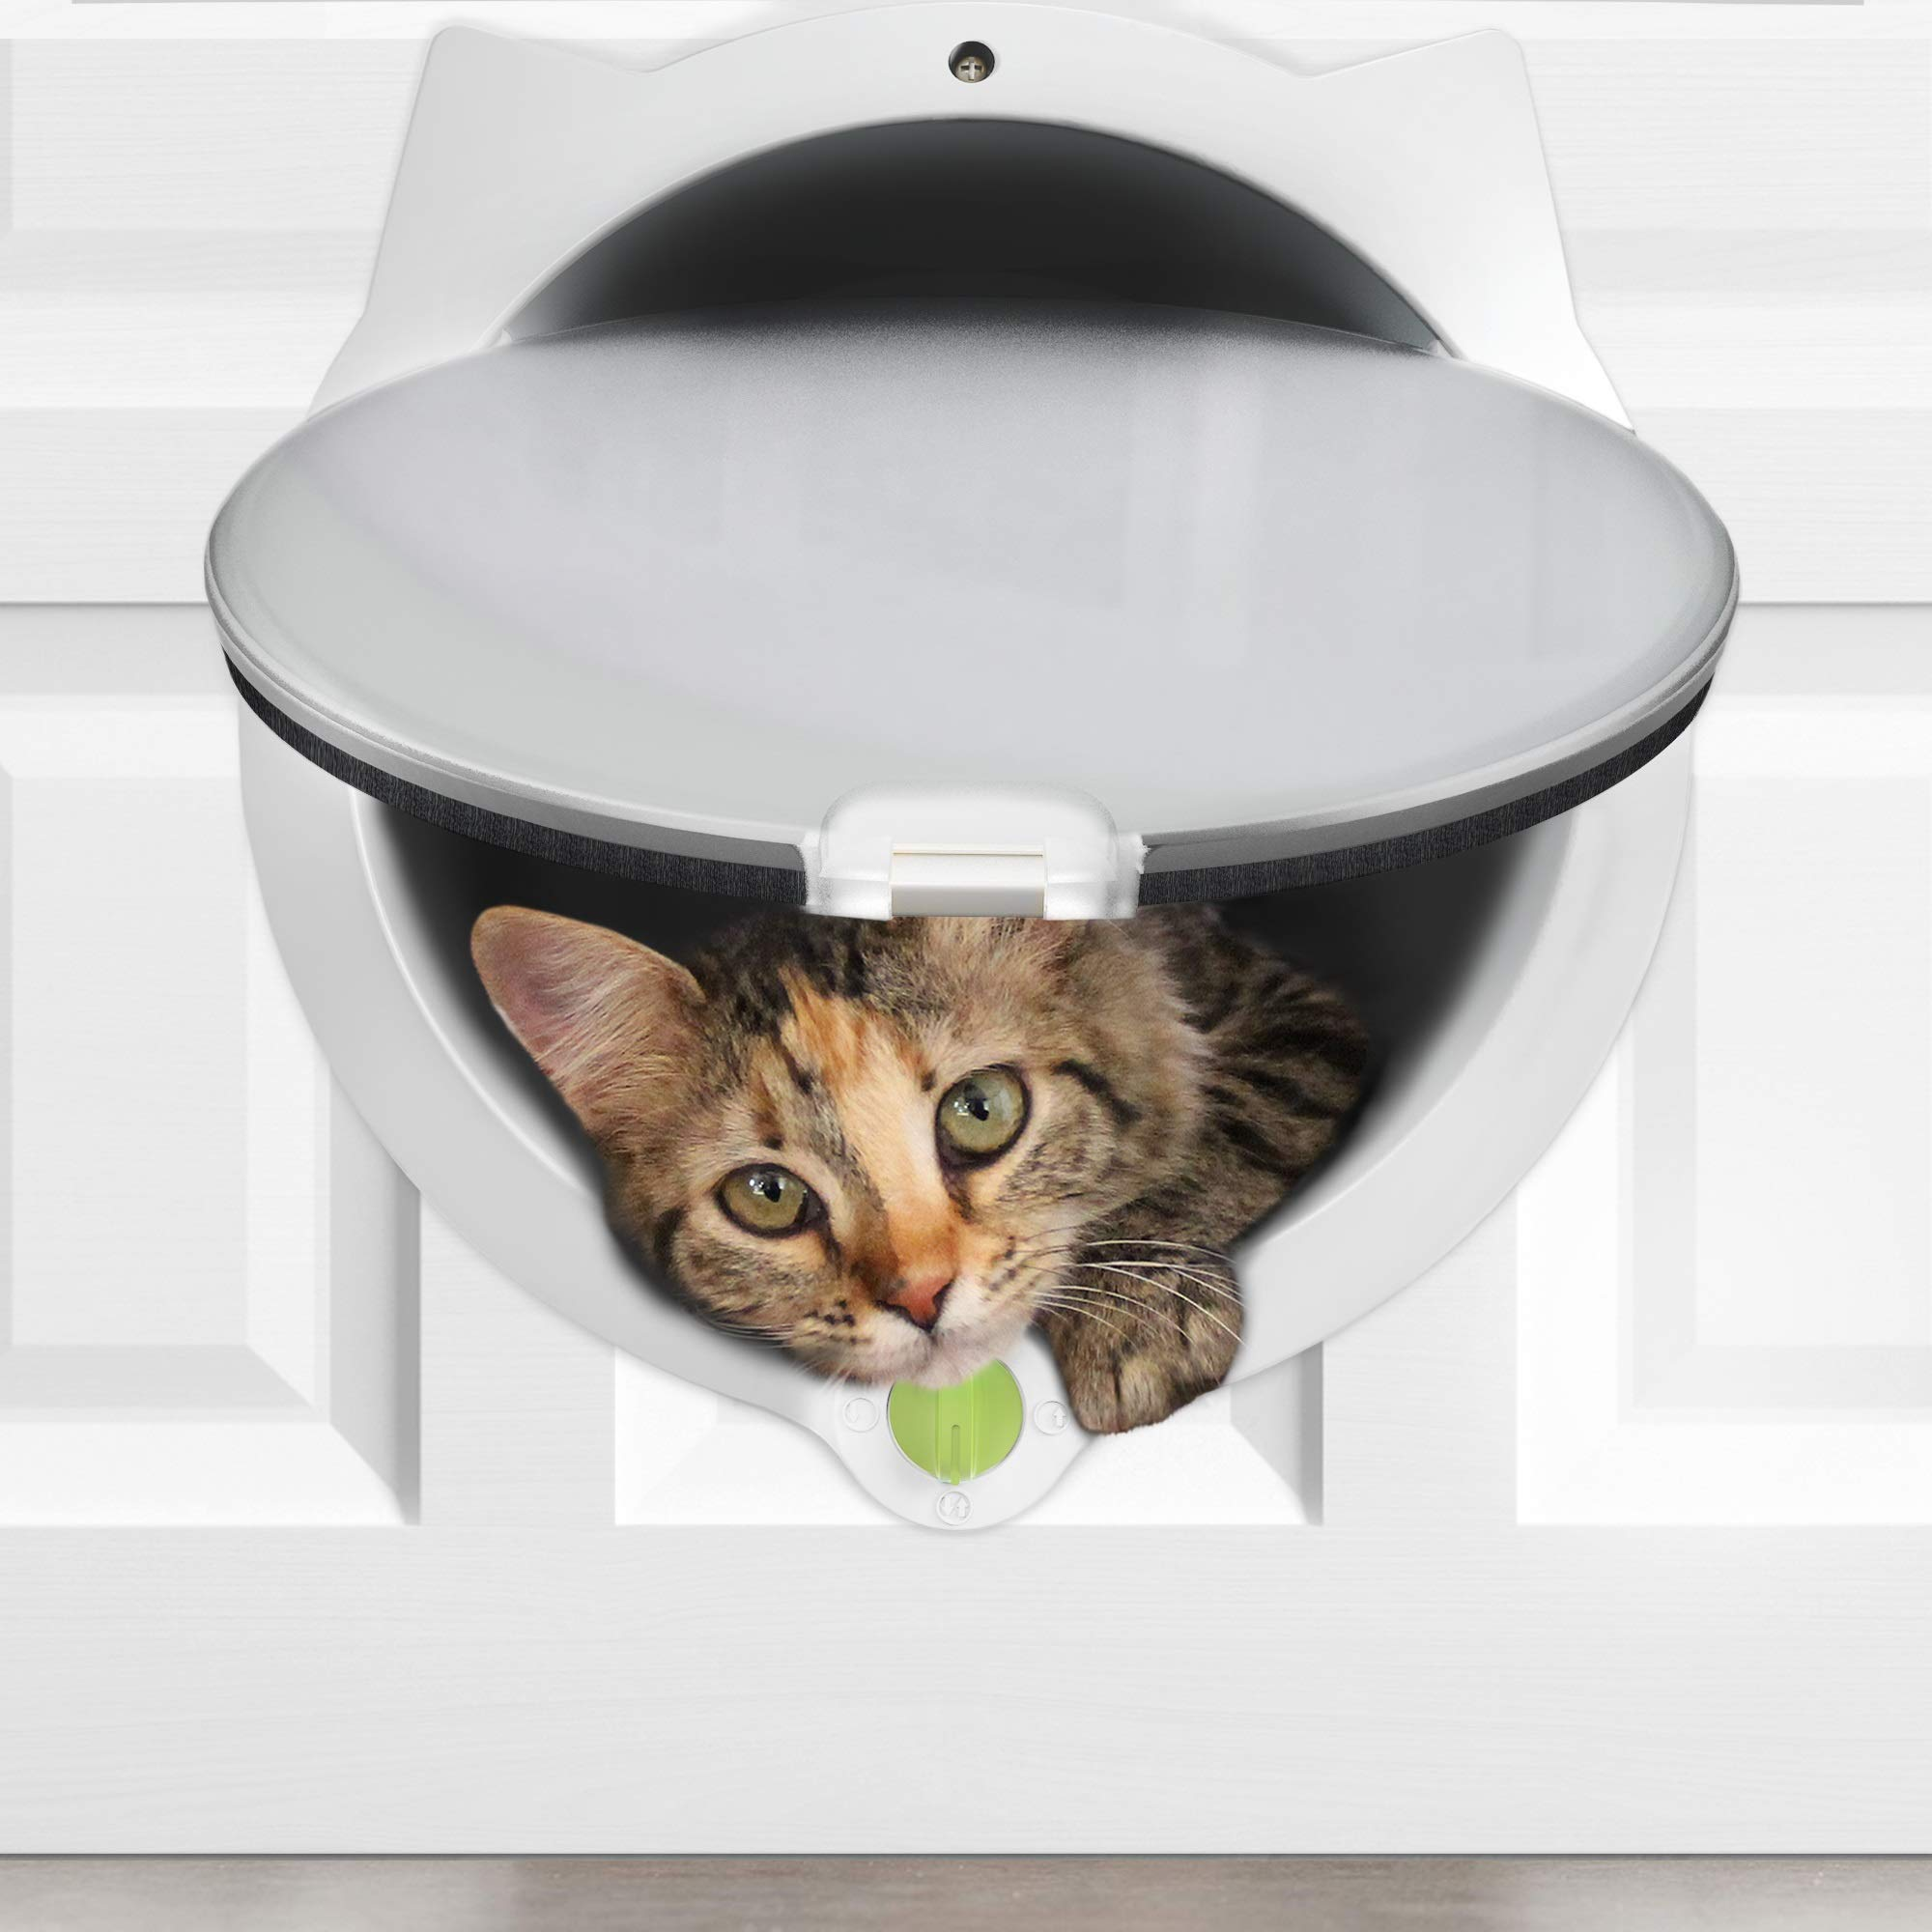 LYNX Cat Door for Pets - 4 Way Locking Cat Flap - for Interior Doors & Exterior Doors, Wall or Hidden Cat Litter Box - Easy & Quick Installation - Kitty Training Tips Included (Off-White) by LYNX (Image #1)